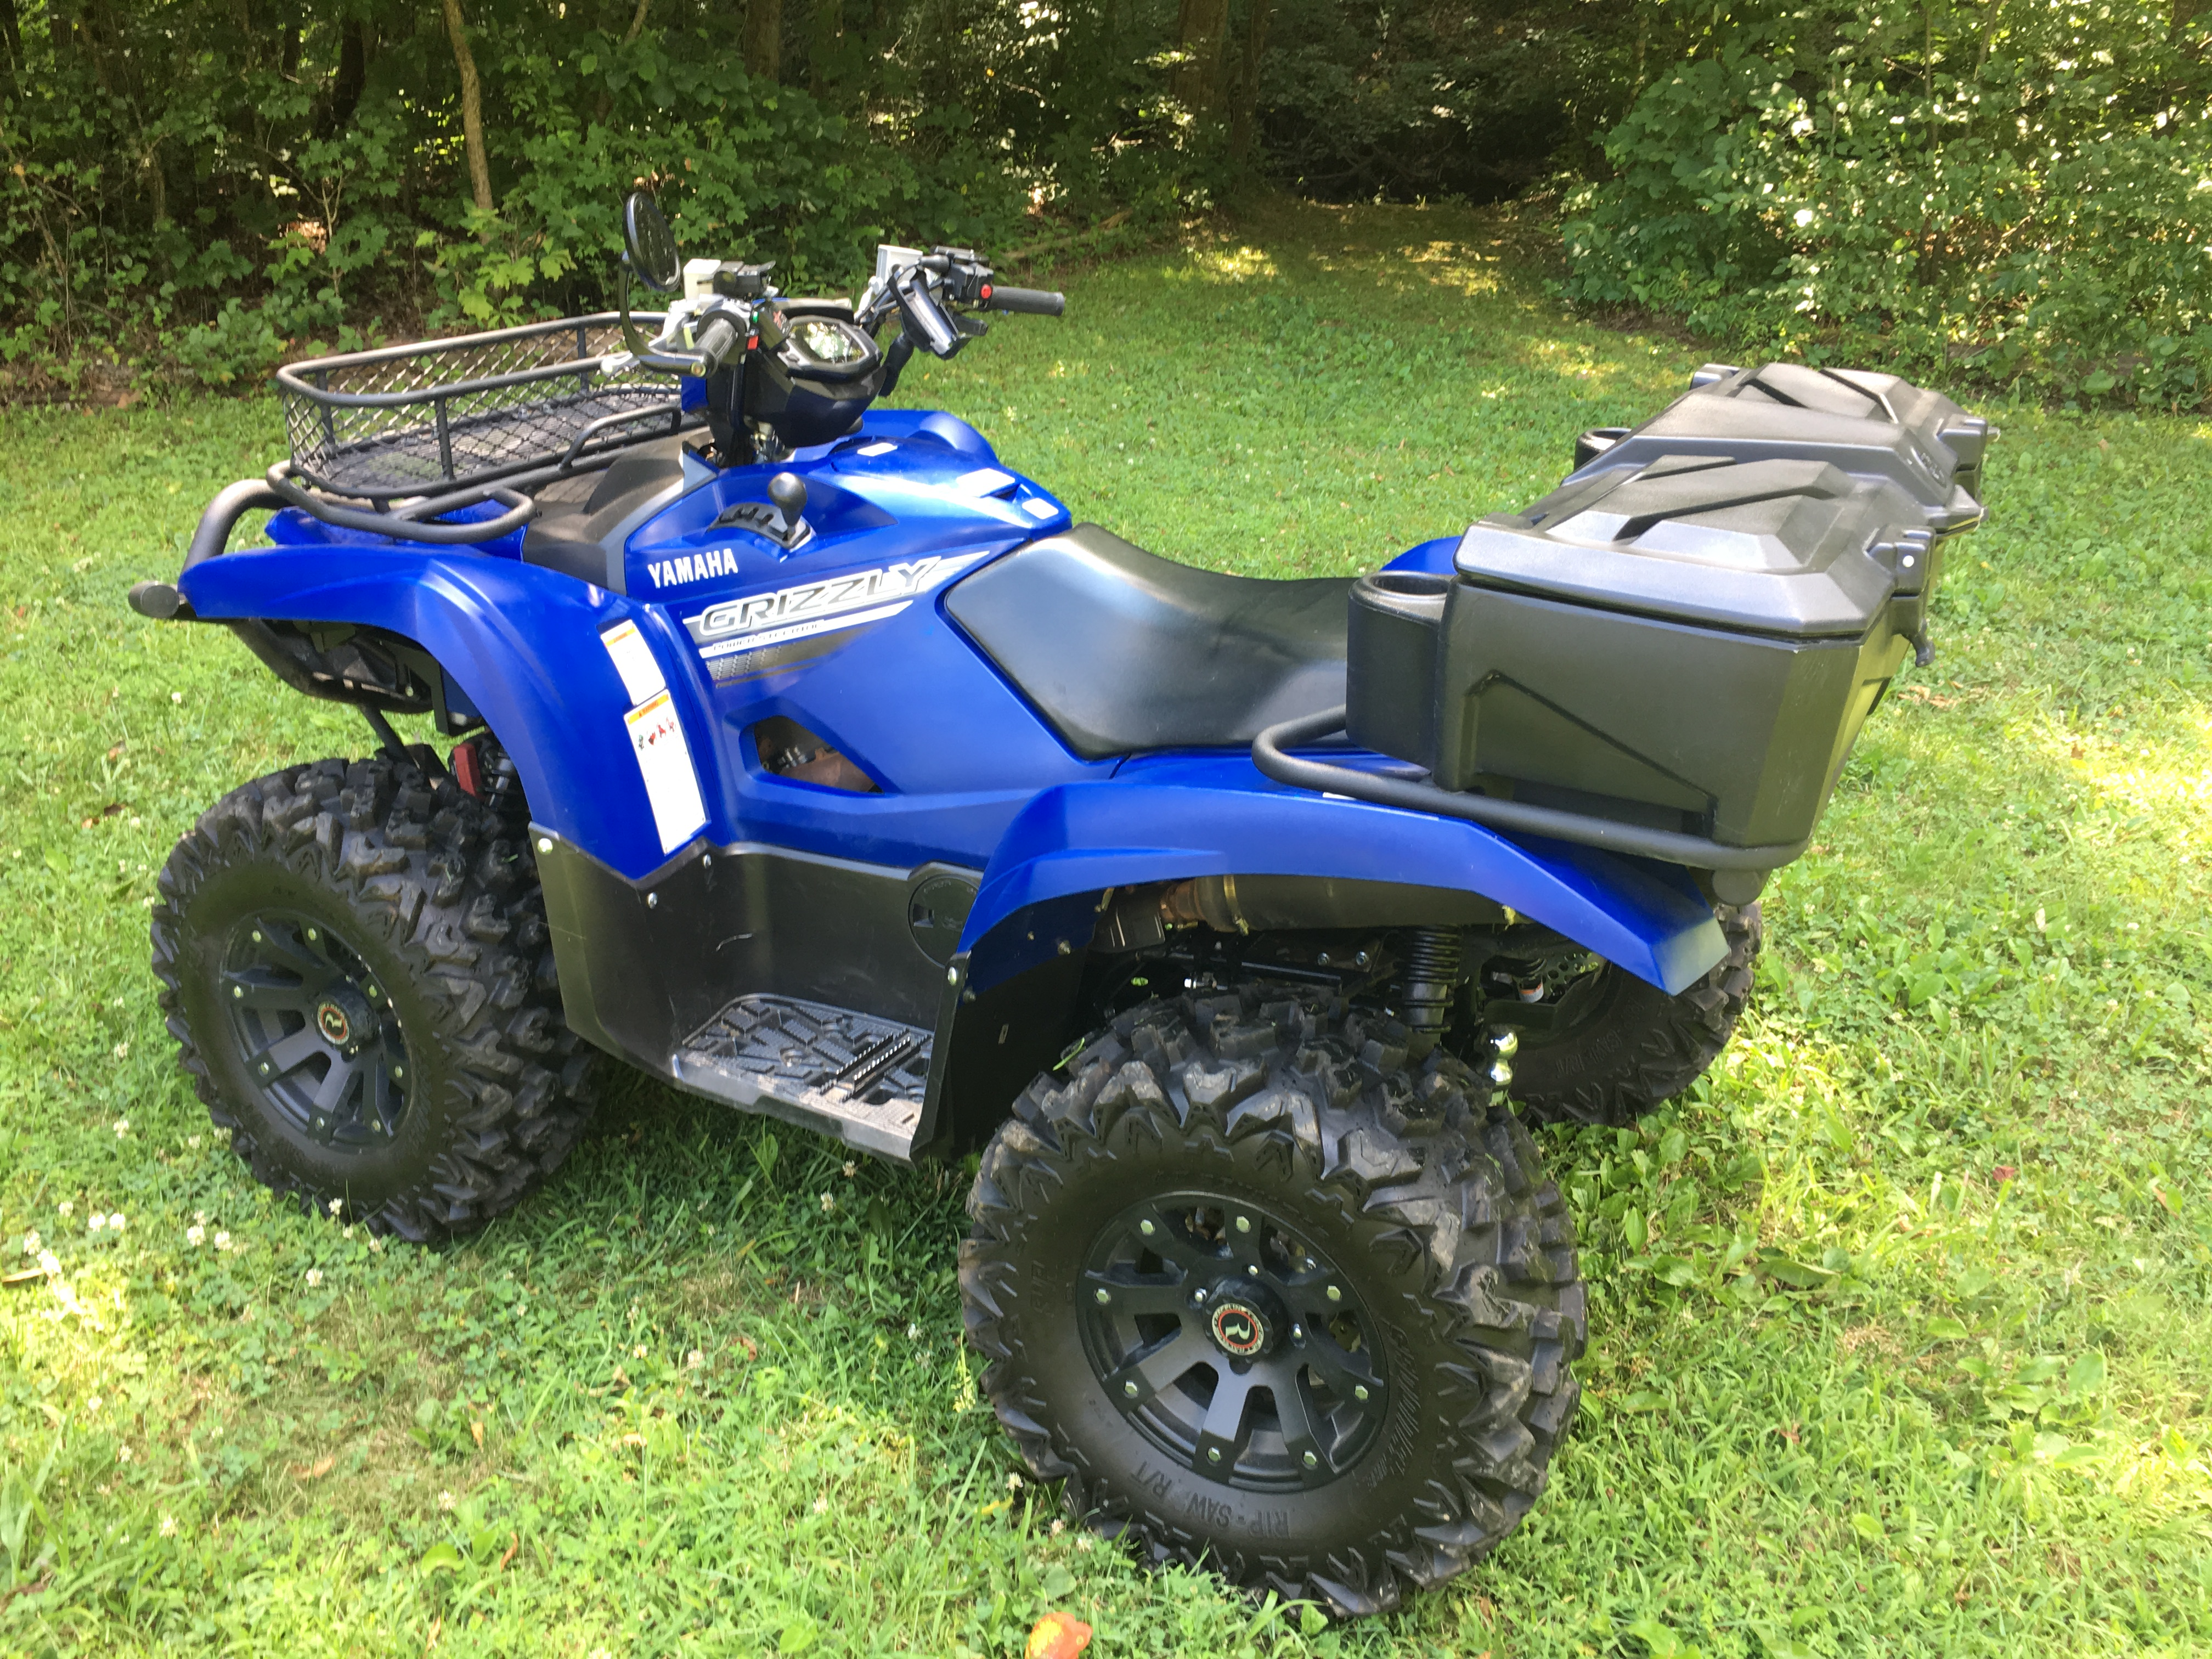 2016 yamaha grizzly 700 eps yamaha grizzly atv forum. Black Bedroom Furniture Sets. Home Design Ideas